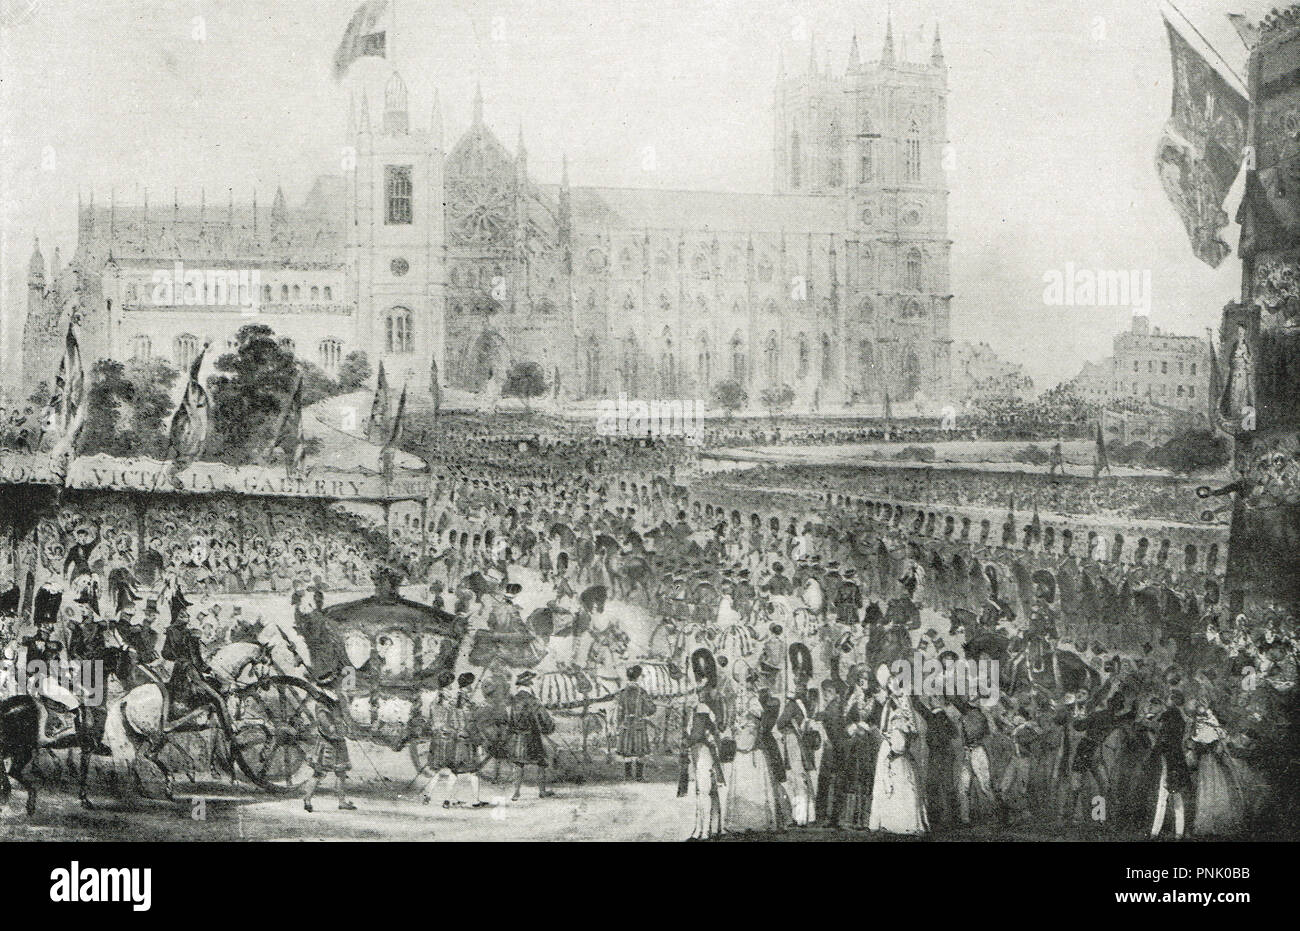 The coronation procession of Queen Victoria, Westminster abbey, 28 June 1838 - Stock Image